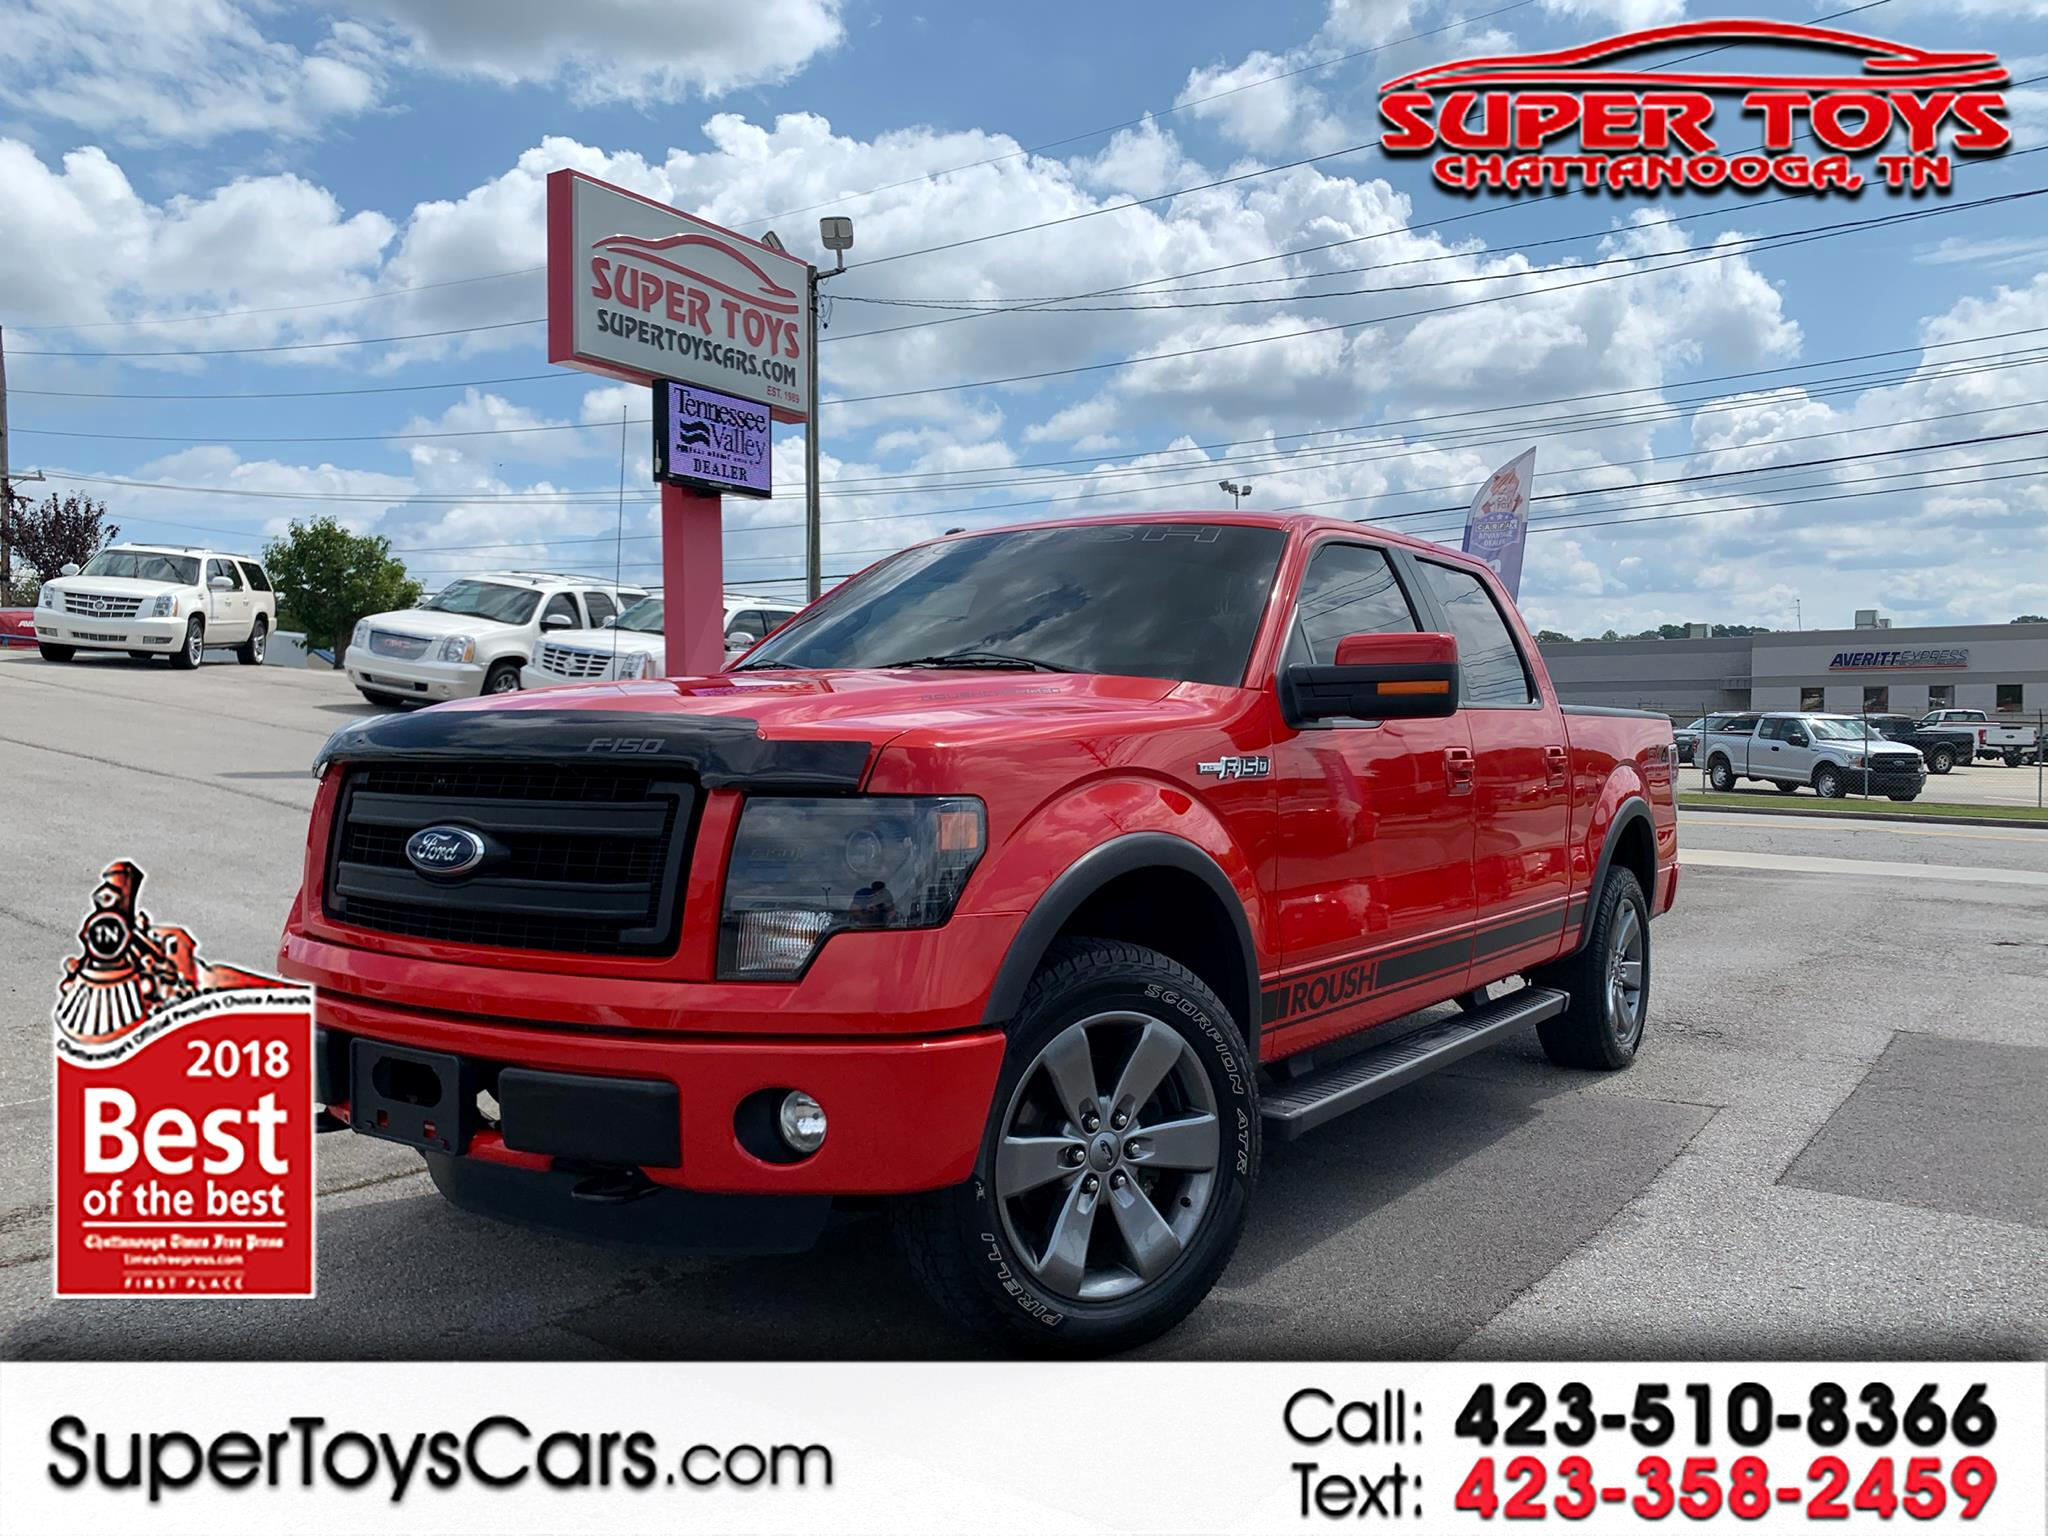 2014 Ford F-150 4WD SuperCrew Platinum Roush Edition